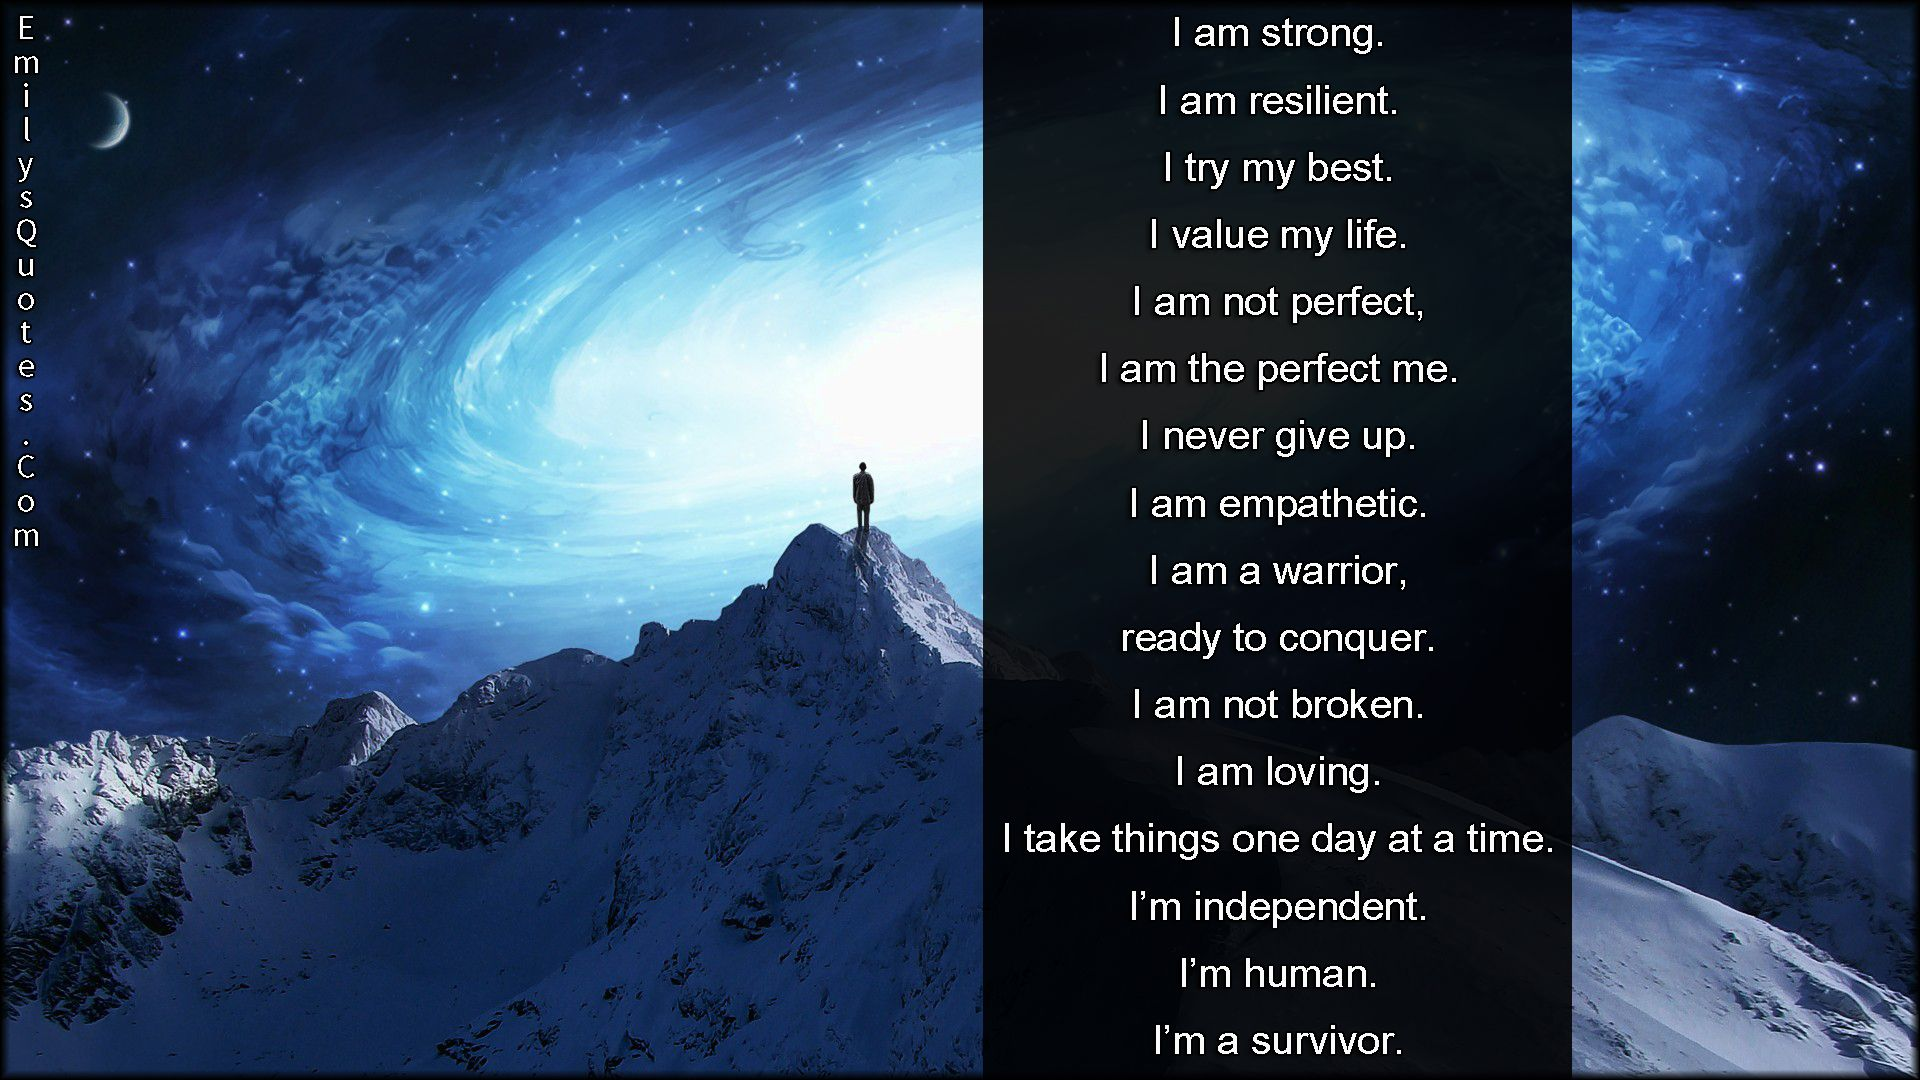 I Am Strong. I Am Resilient. I Try My Best. I Value My Life. I Am Not  Perfect, I Am The Perfect Me. I Never Give Up. I Am Empathetic.